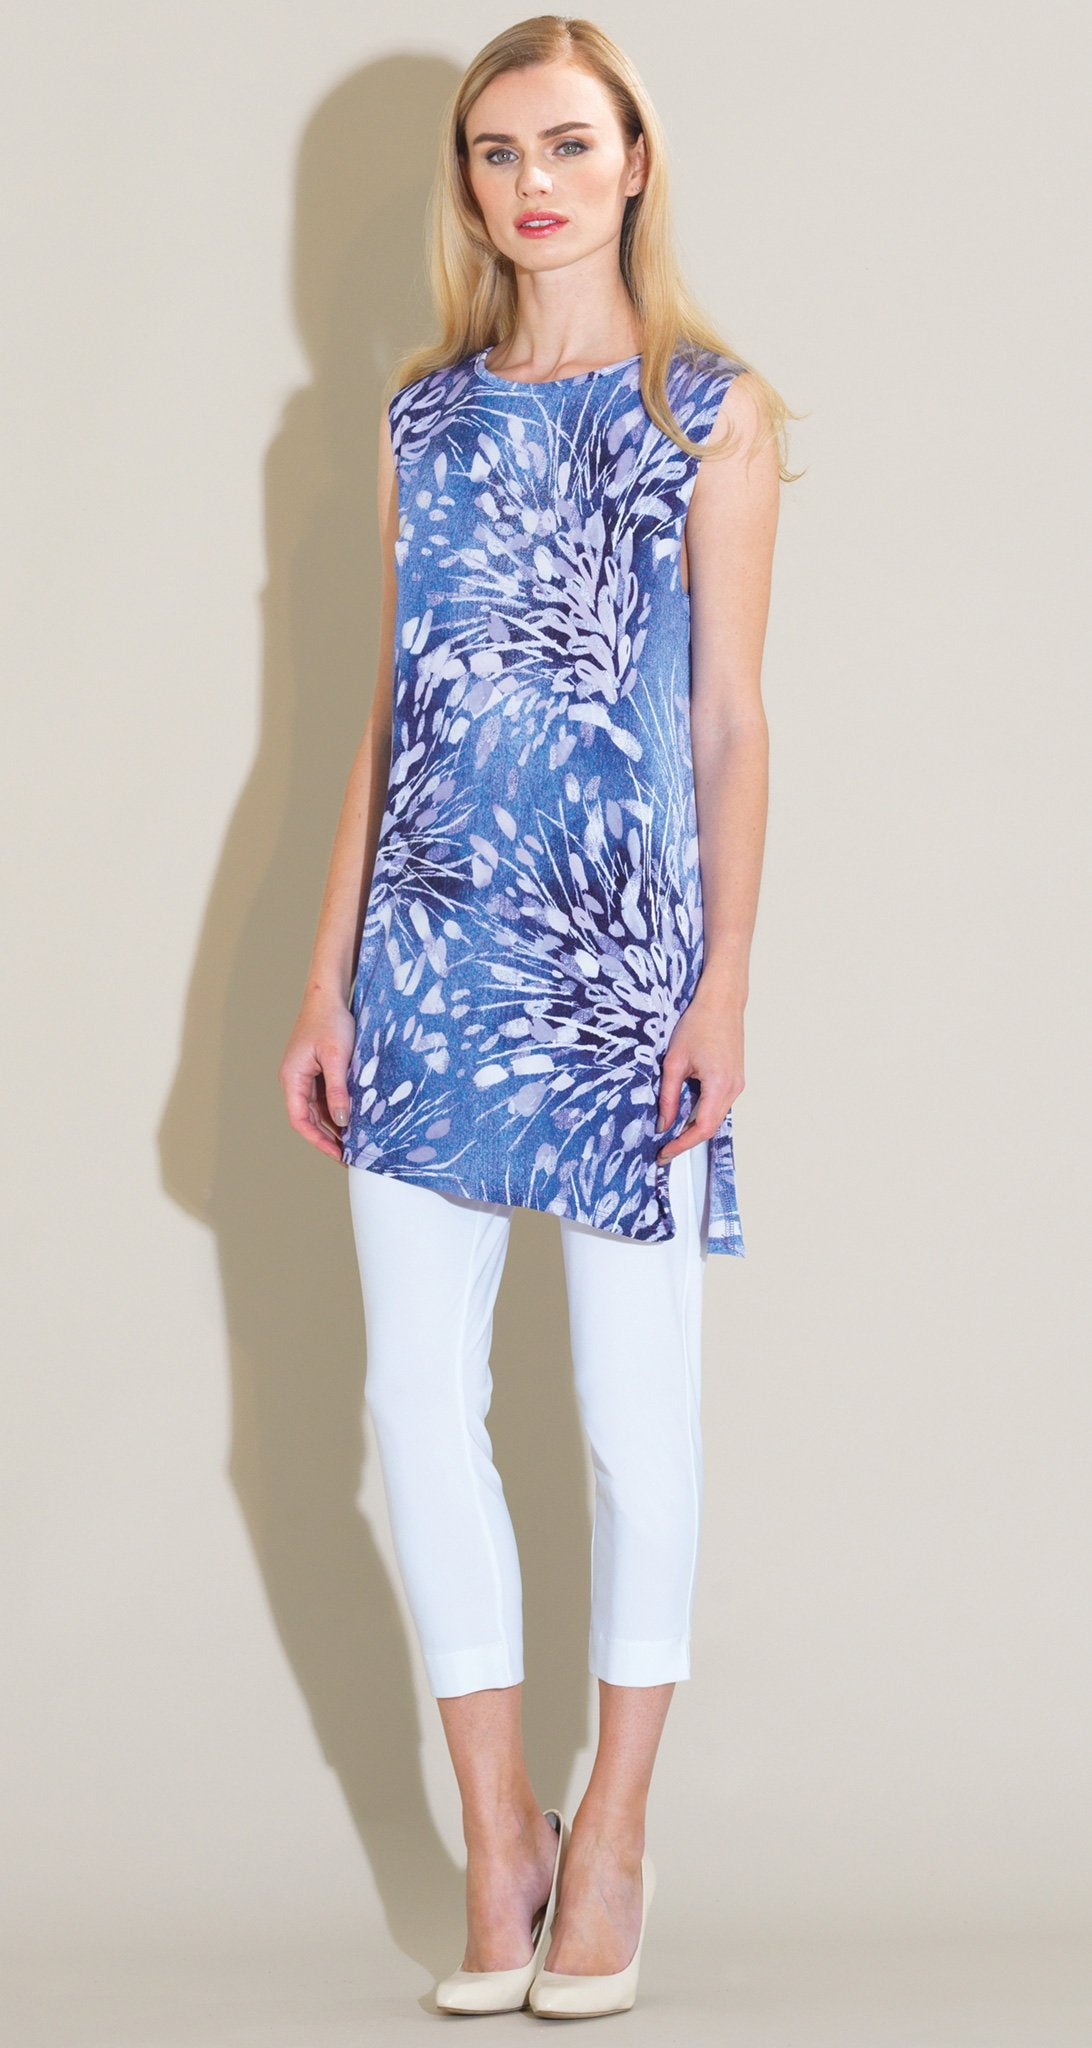 Floral Starburst Print Tunic Tank - Blue/White - Final Sale! - Clara Sunwoo